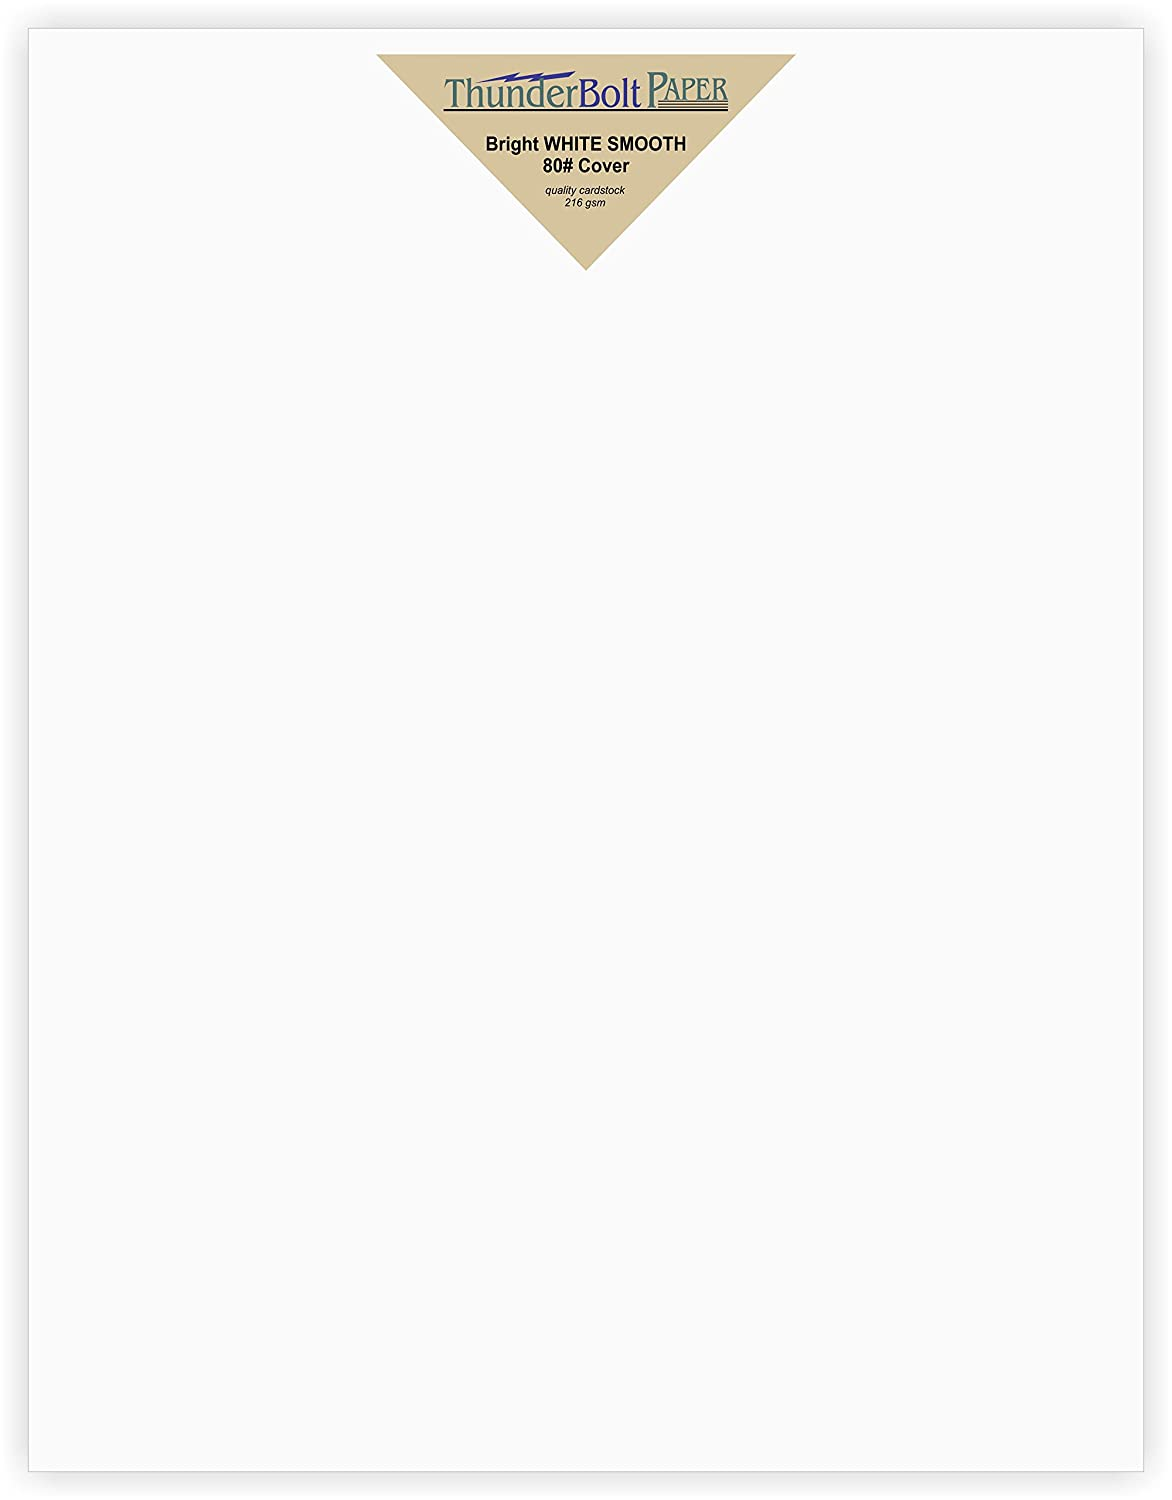 Amazon 100 Bright White Smooth Card Paper Sheets 8 X 10